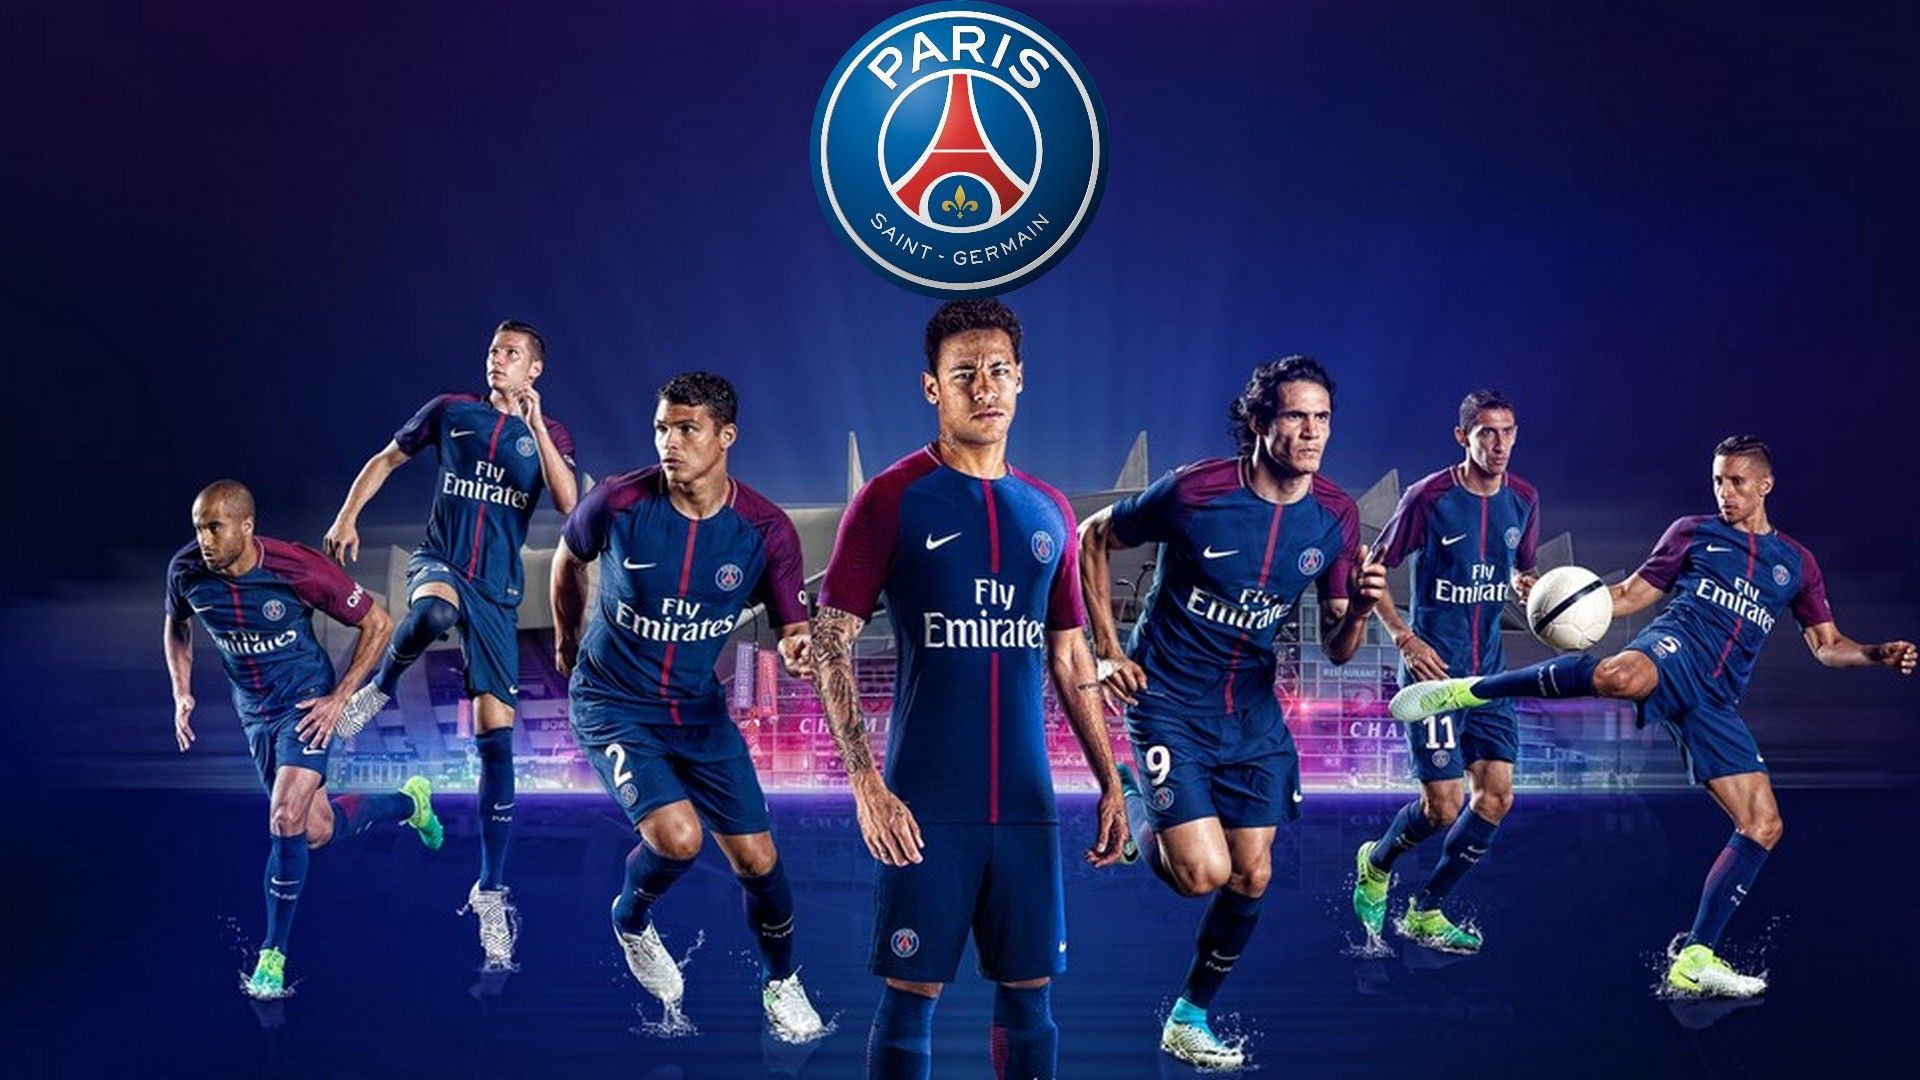 Psg Team Wallpapers Top Free Psg Team Backgrounds Wallpaperaccess